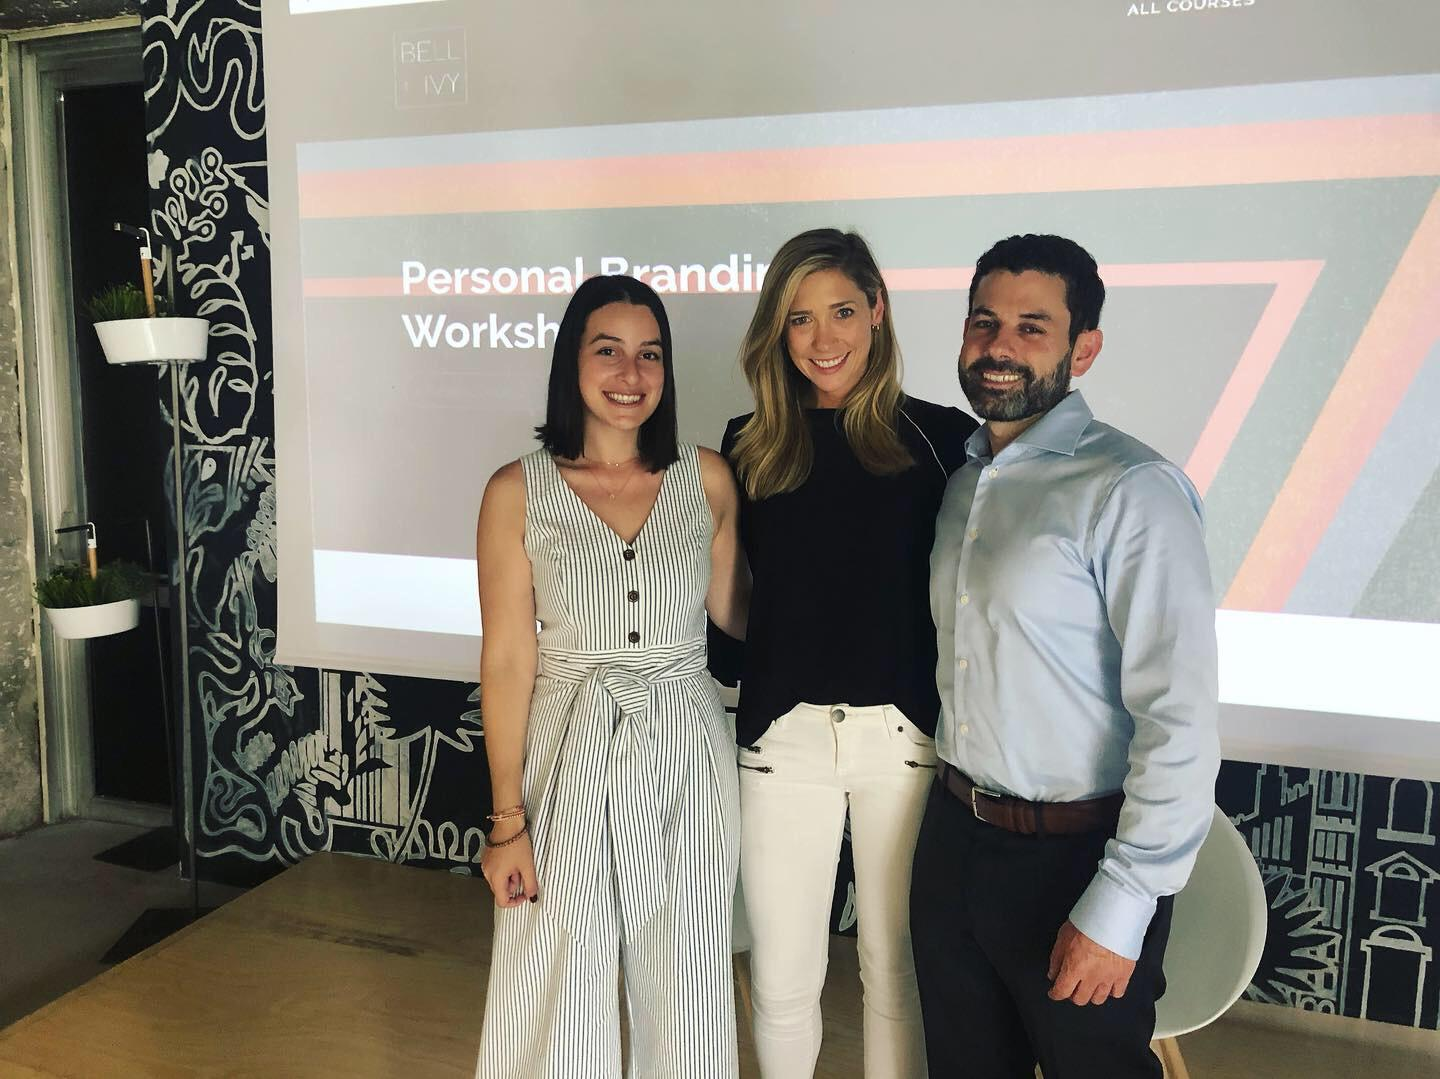 Personal Brand Workshop in Italy - Milan and Rome, June 2019